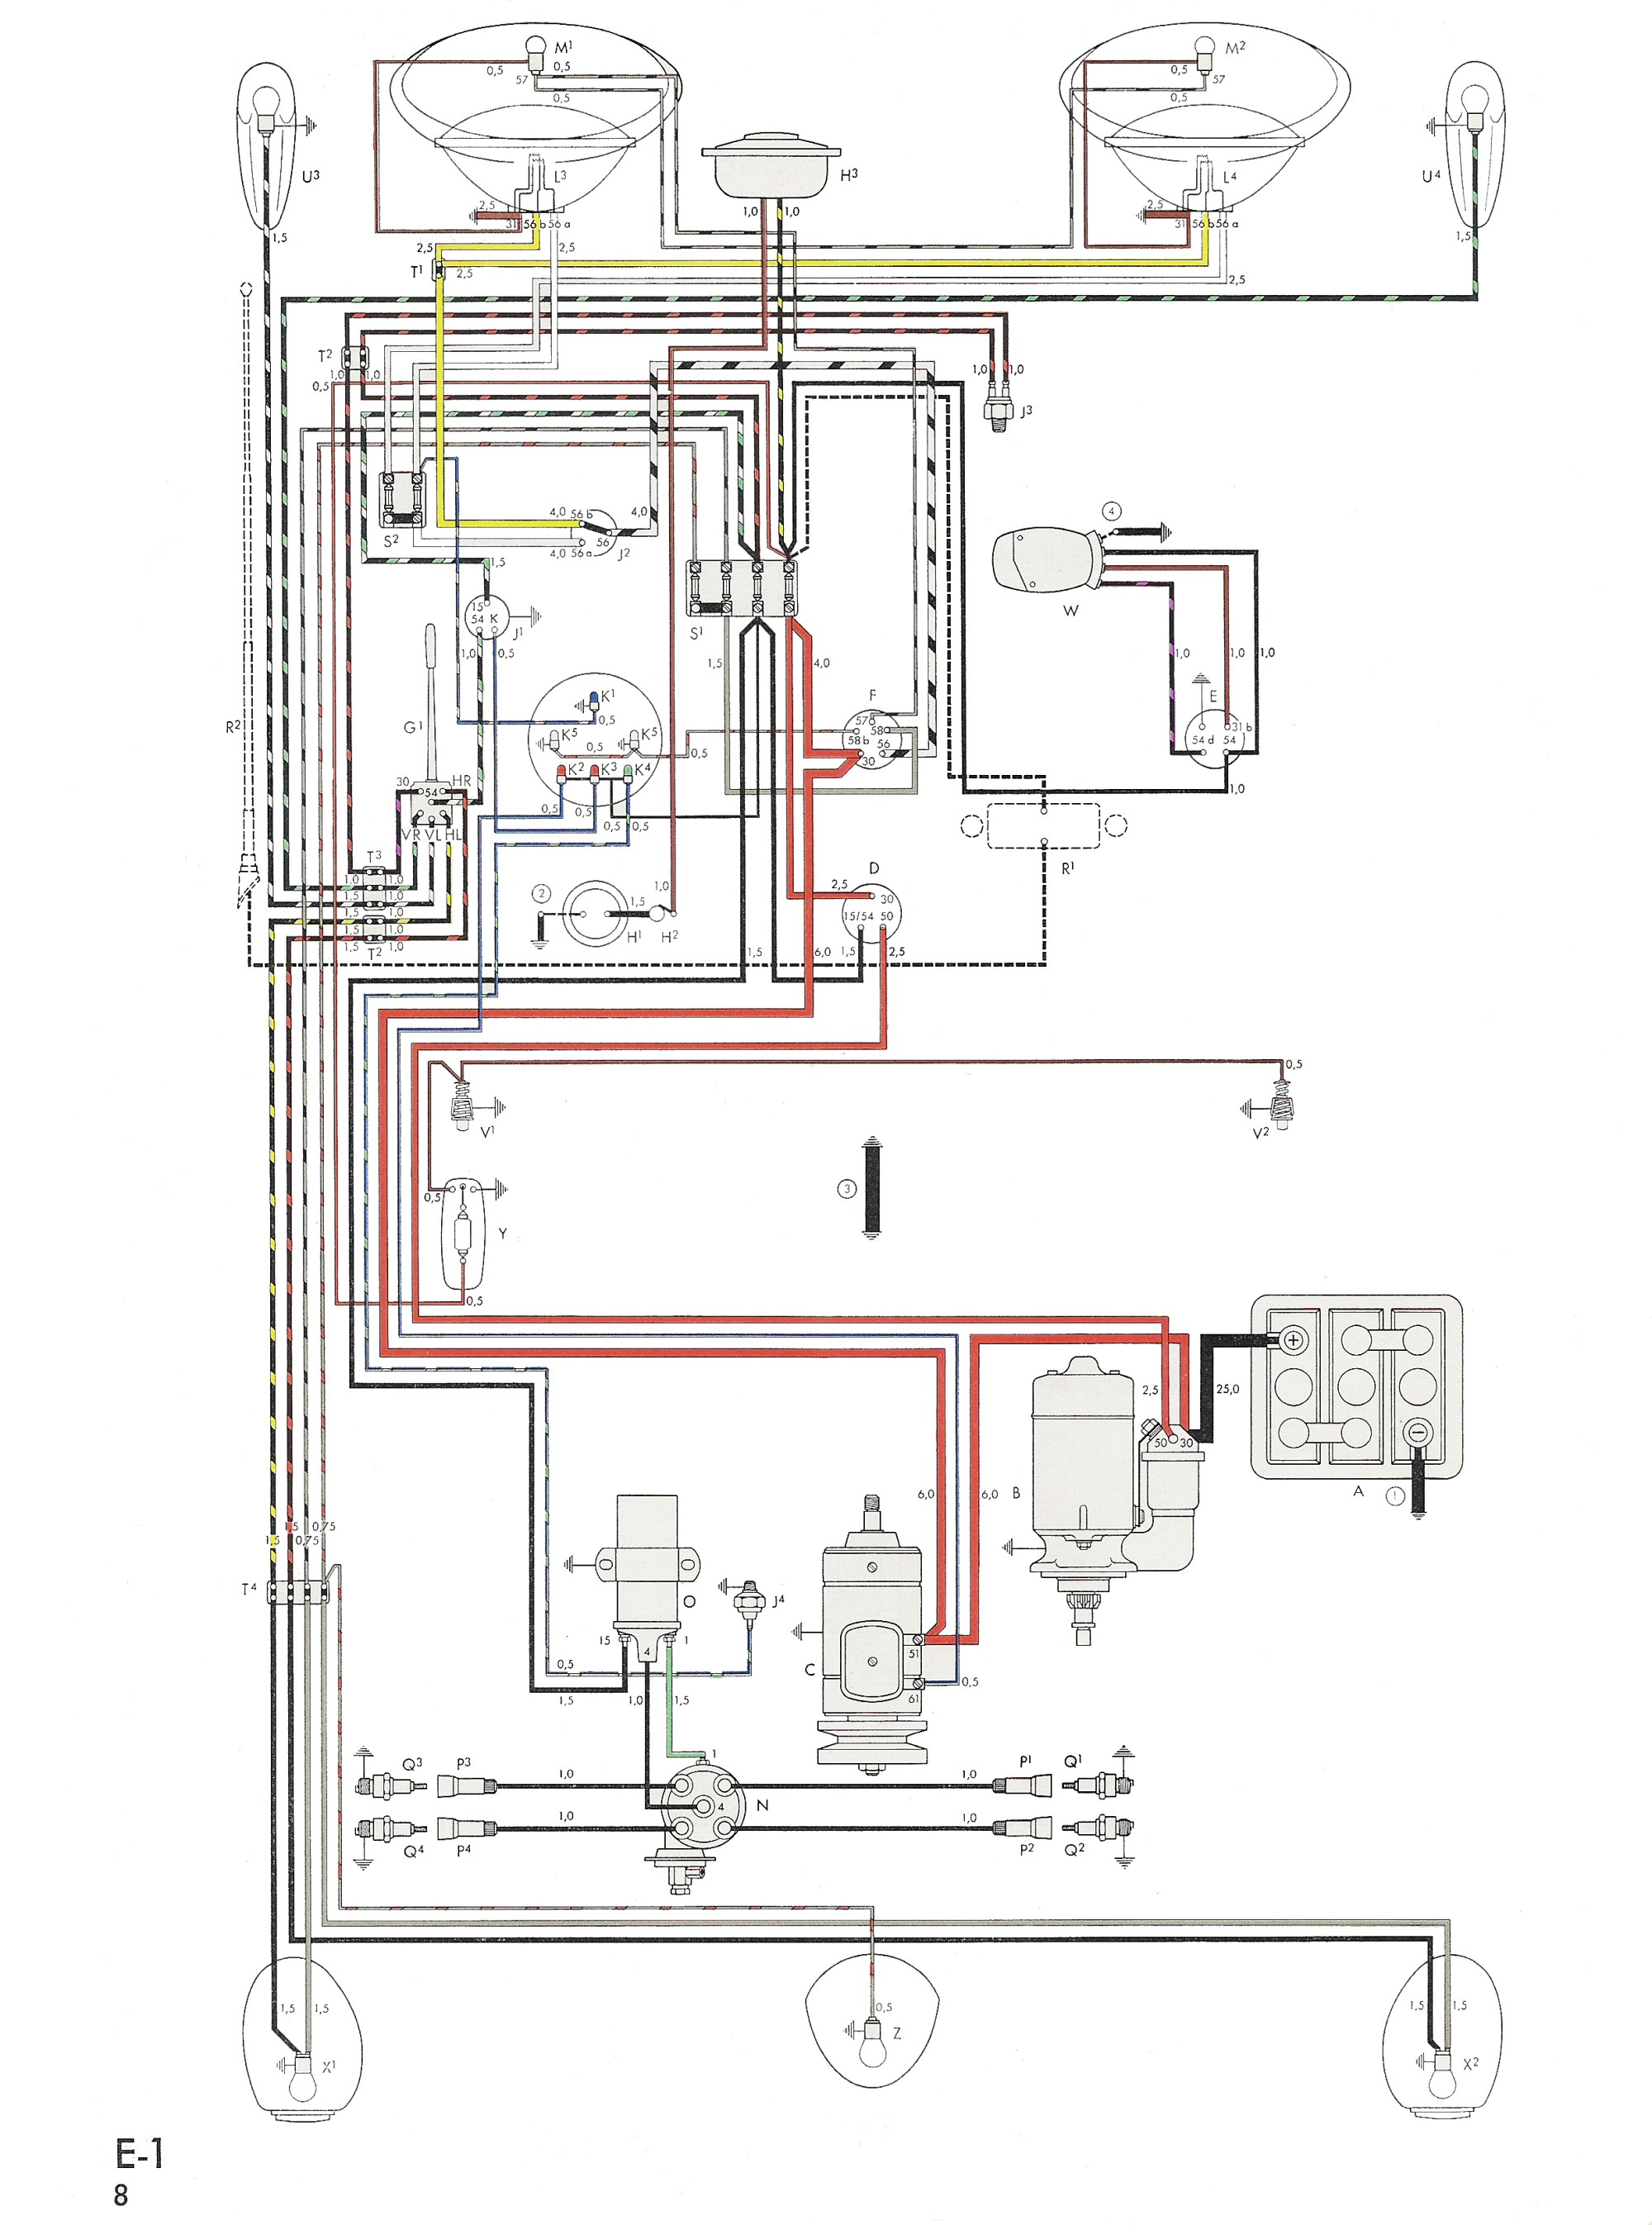 hight resolution of thesamba com type 1 wiring diagrams mercury mr52 wiring diagram mercury optimax wiring diagram